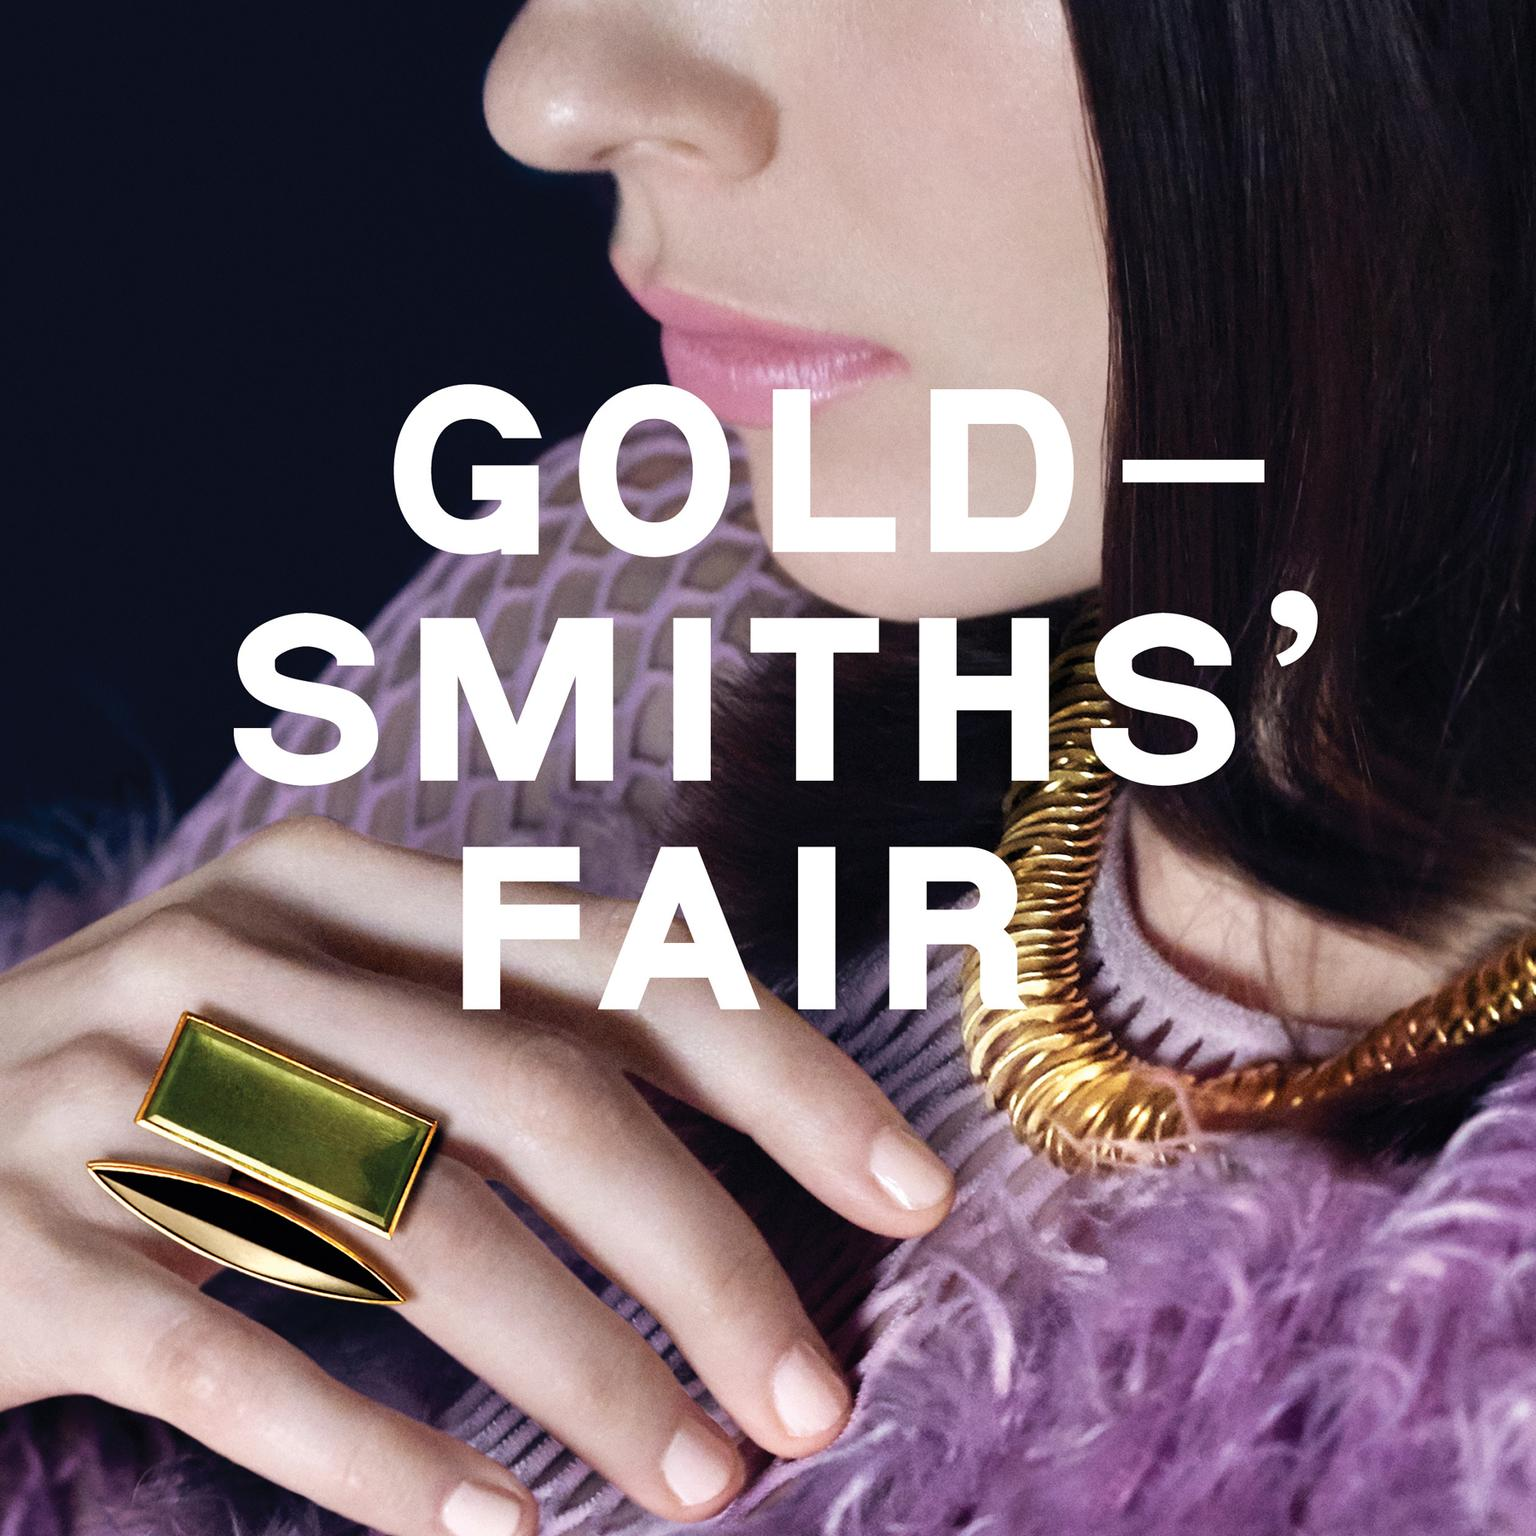 Goldsmiths' Fair